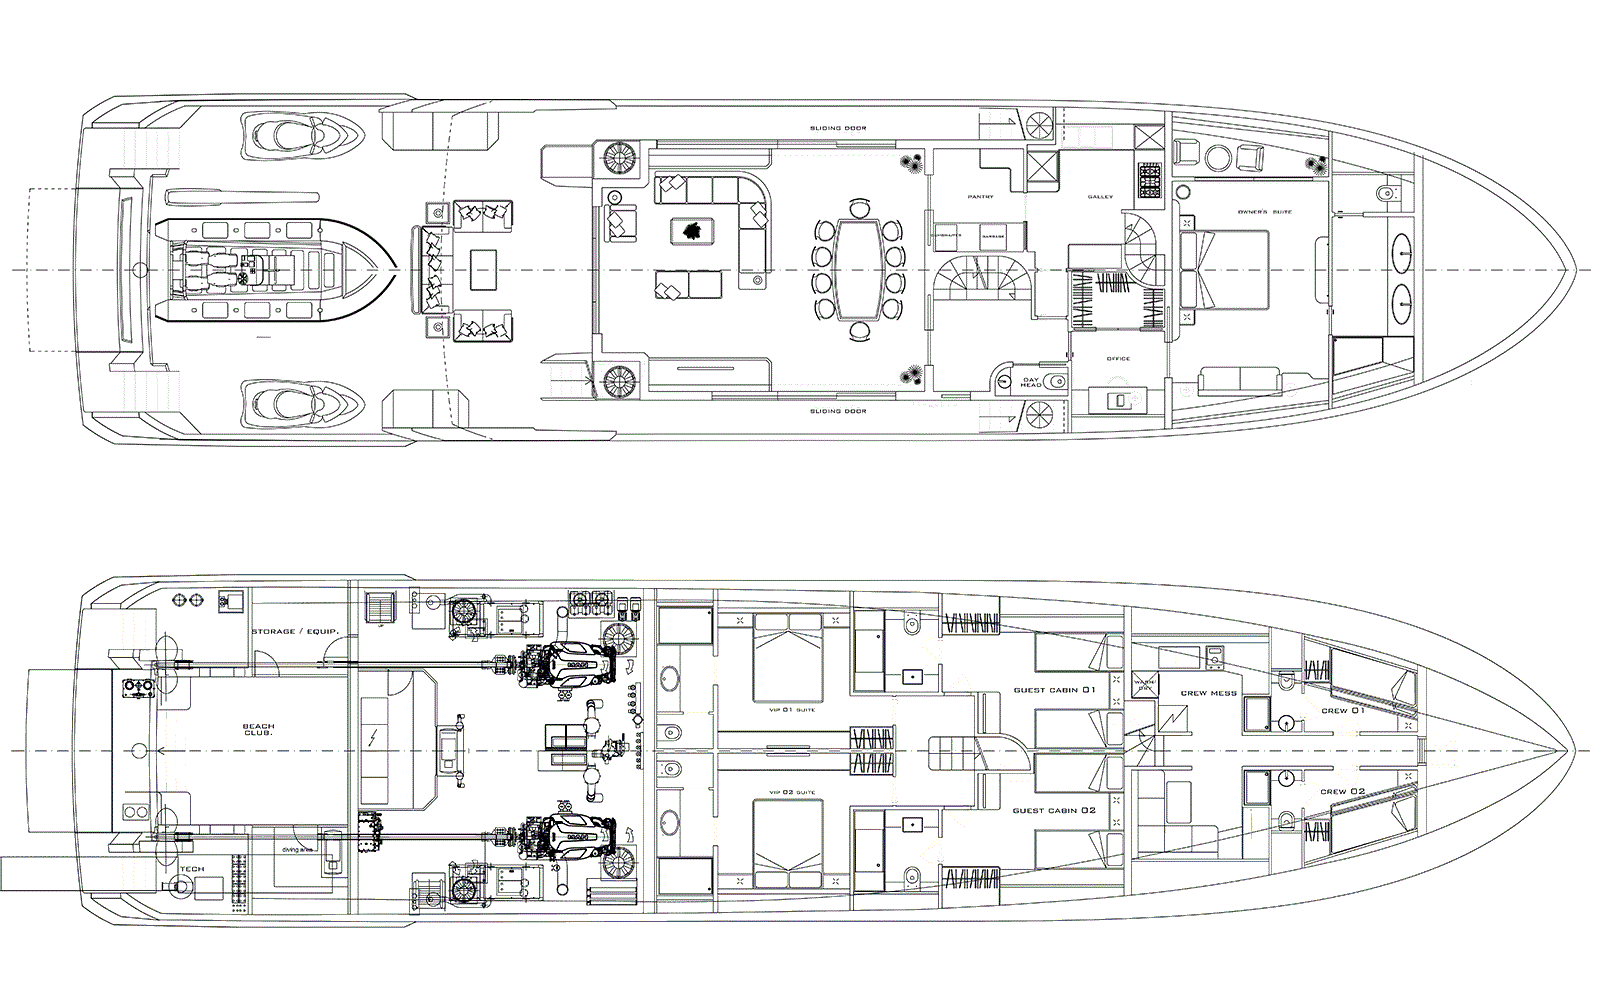 Deck plan of M/Y PACIFICO 35 yacht for sale